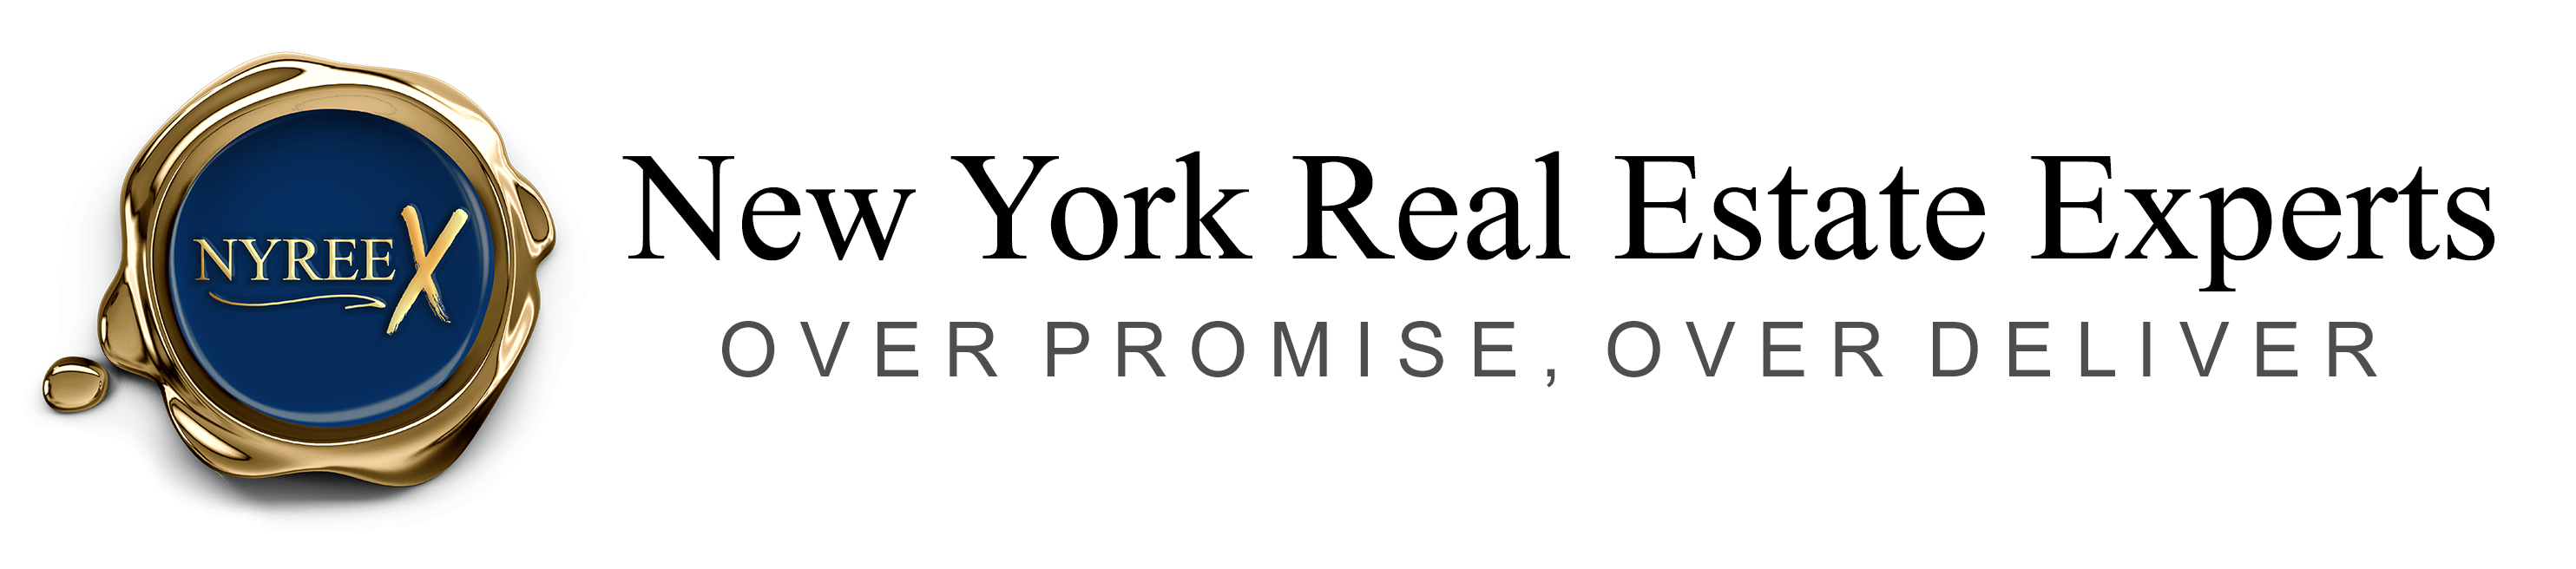 New York Real Estate Experts image 0